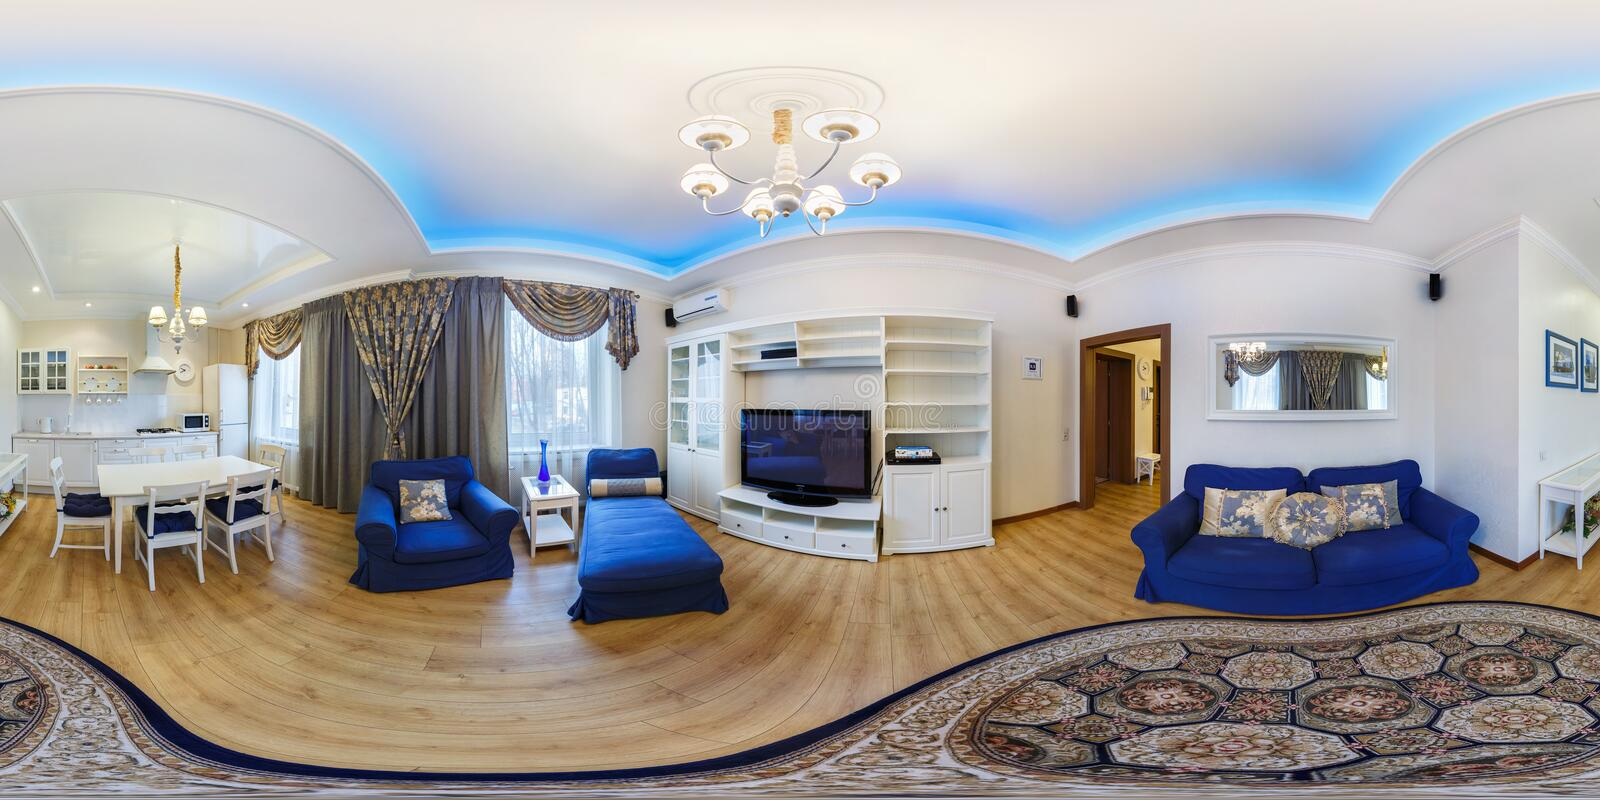 MINSK, BELARUS - FEBRUARY 27, 2014: full 360 degree seamless panorama in equirectangular spherical equidistant projection. Panorama in interior of modern stock photo